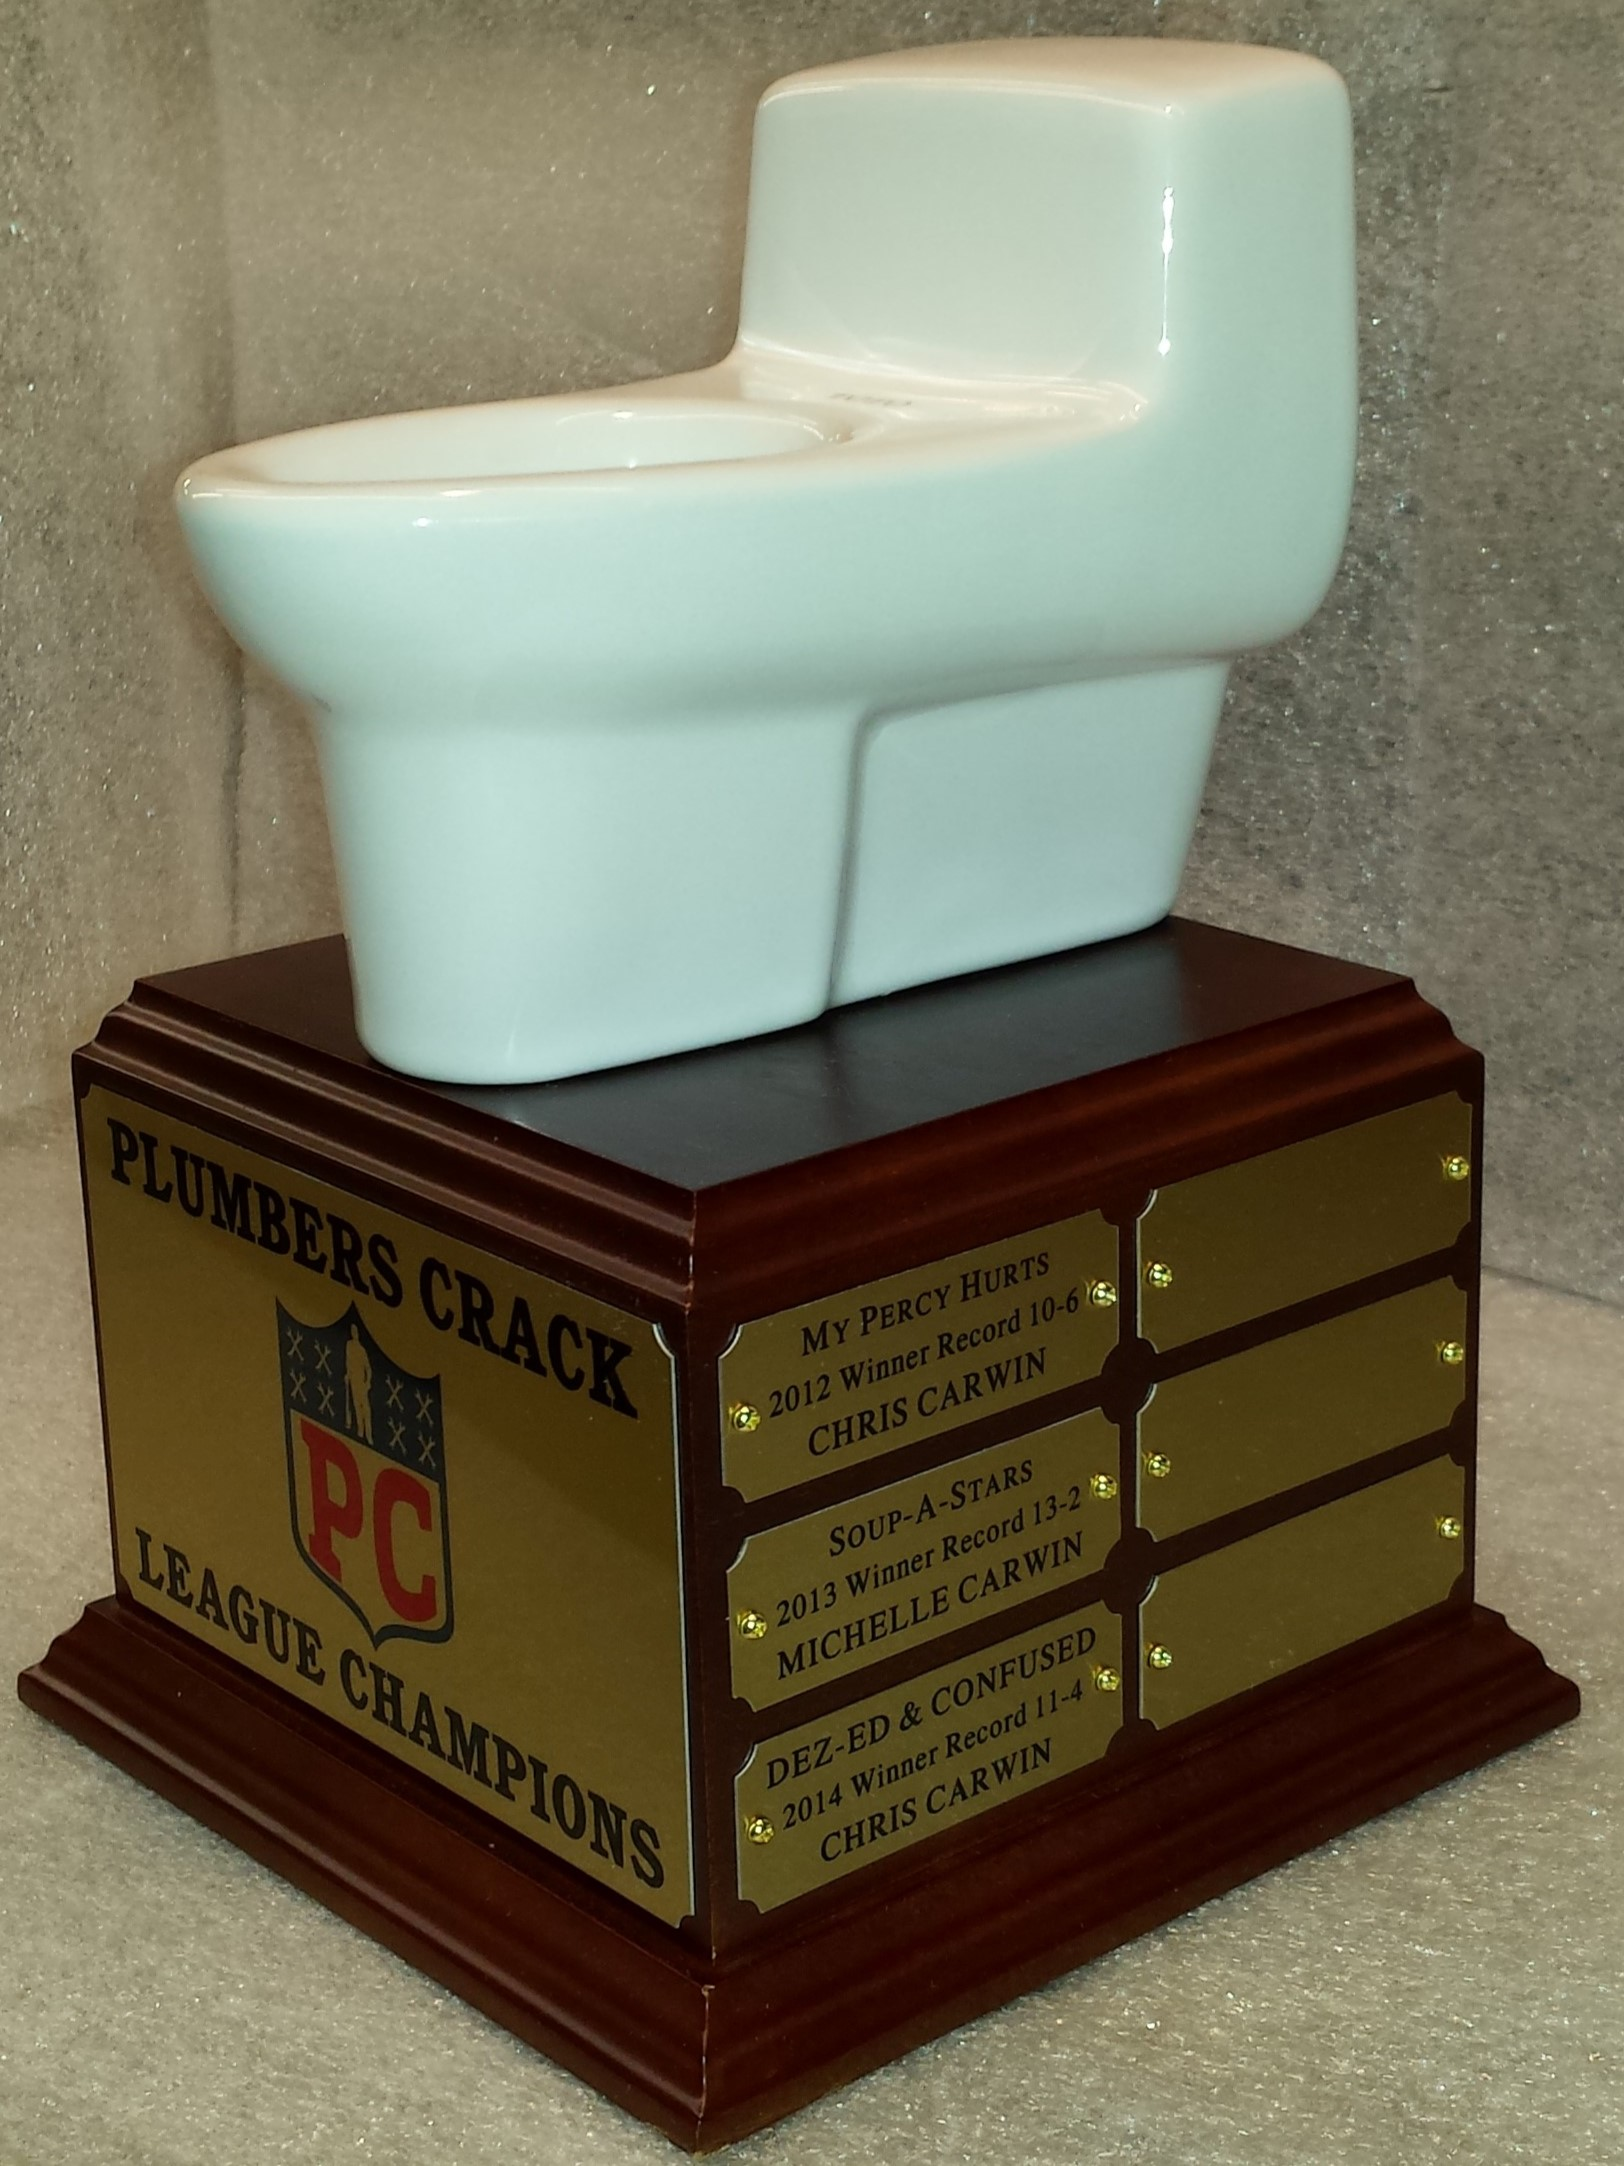 Fantasy Football League Trophies Plumbers Crack